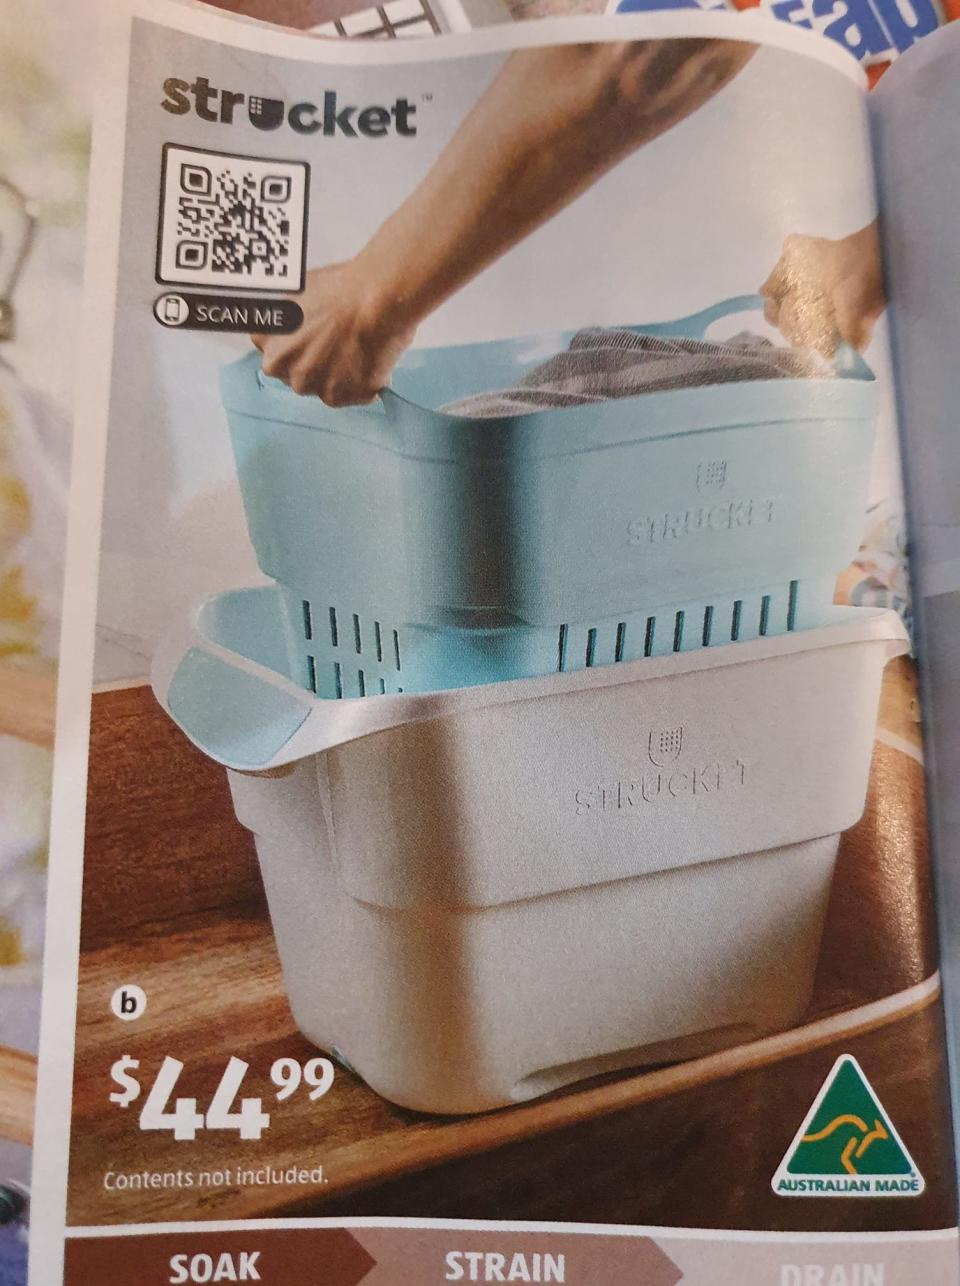 Strucket in the Aldi Special Buys catalogue